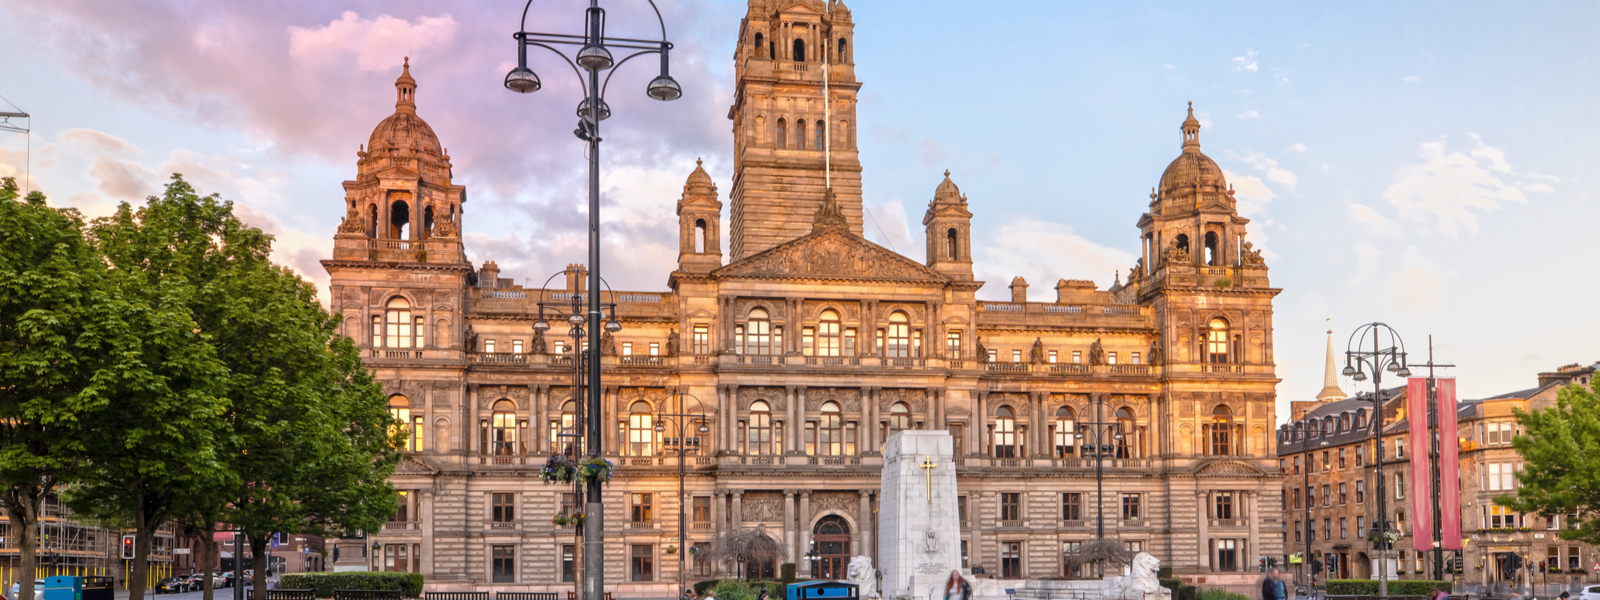 Glasgow's George Square in the evening